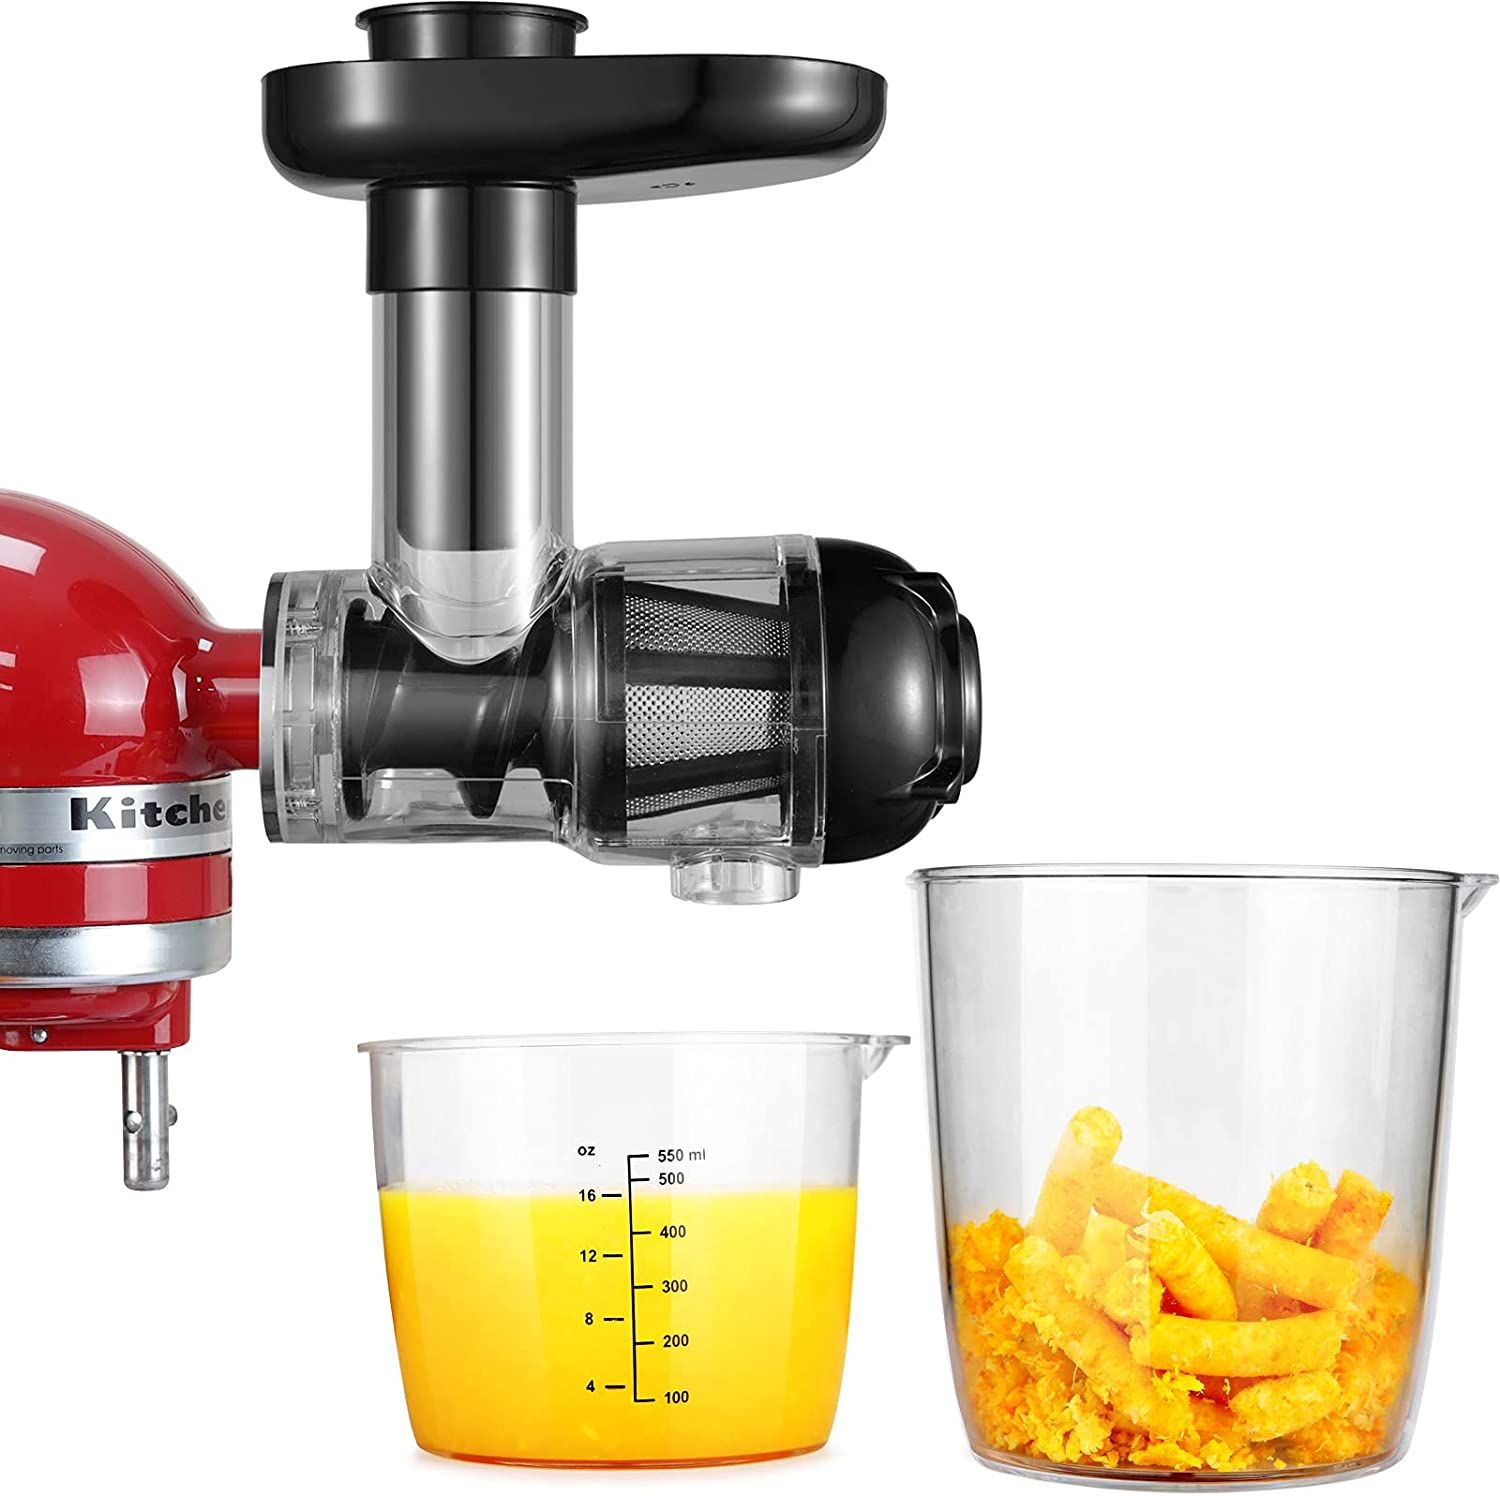 Masticating Juicer Accessories, Gdrtwwh Juicer Machines Attachments Compatible with KitchenAid 3.5/4.5/5 Quart Tilt Head Stand Mixers and Cuisinart SM-50BC/SM-50R/SM-50TQ/SM-50BL/SM-50BK Stand Mixers